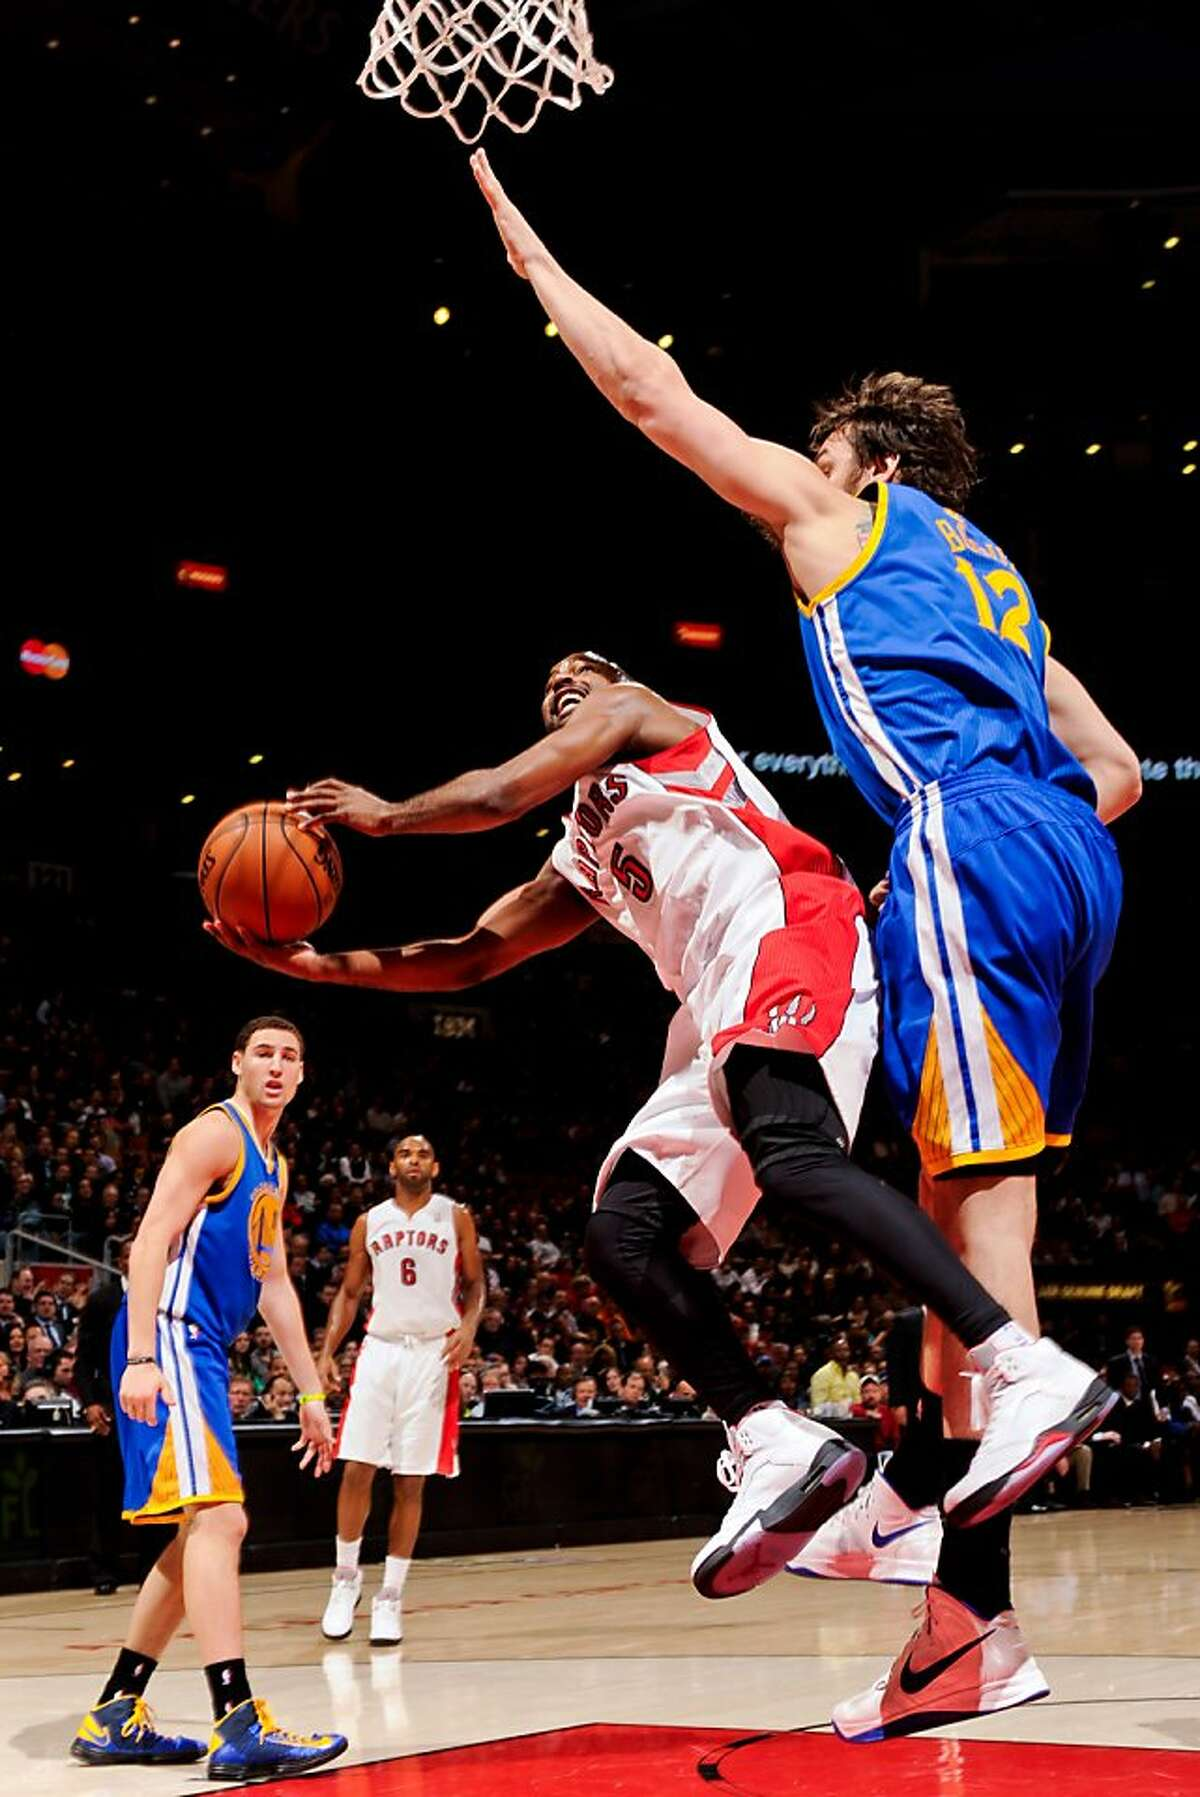 TORONTO, CANADA - JANUARY 28: John Lucas #5 of the Toronto Raptors attempts a shot against Andrew Bogut #12 of the Golden State Warriors on January 28, 2013 at the Air Canada Centre in Toronto, Ontario, Canada. NOTE TO USER: User expressly acknowledges and agrees that, by downloading and or using this photograph, user is consenting to the terms and conditions of the Getty Images License Agreement. Mandatory Copyright Notice: Copyright 2013 NBAE (Photo by Ron Turenne/NBAE via Getty Images)